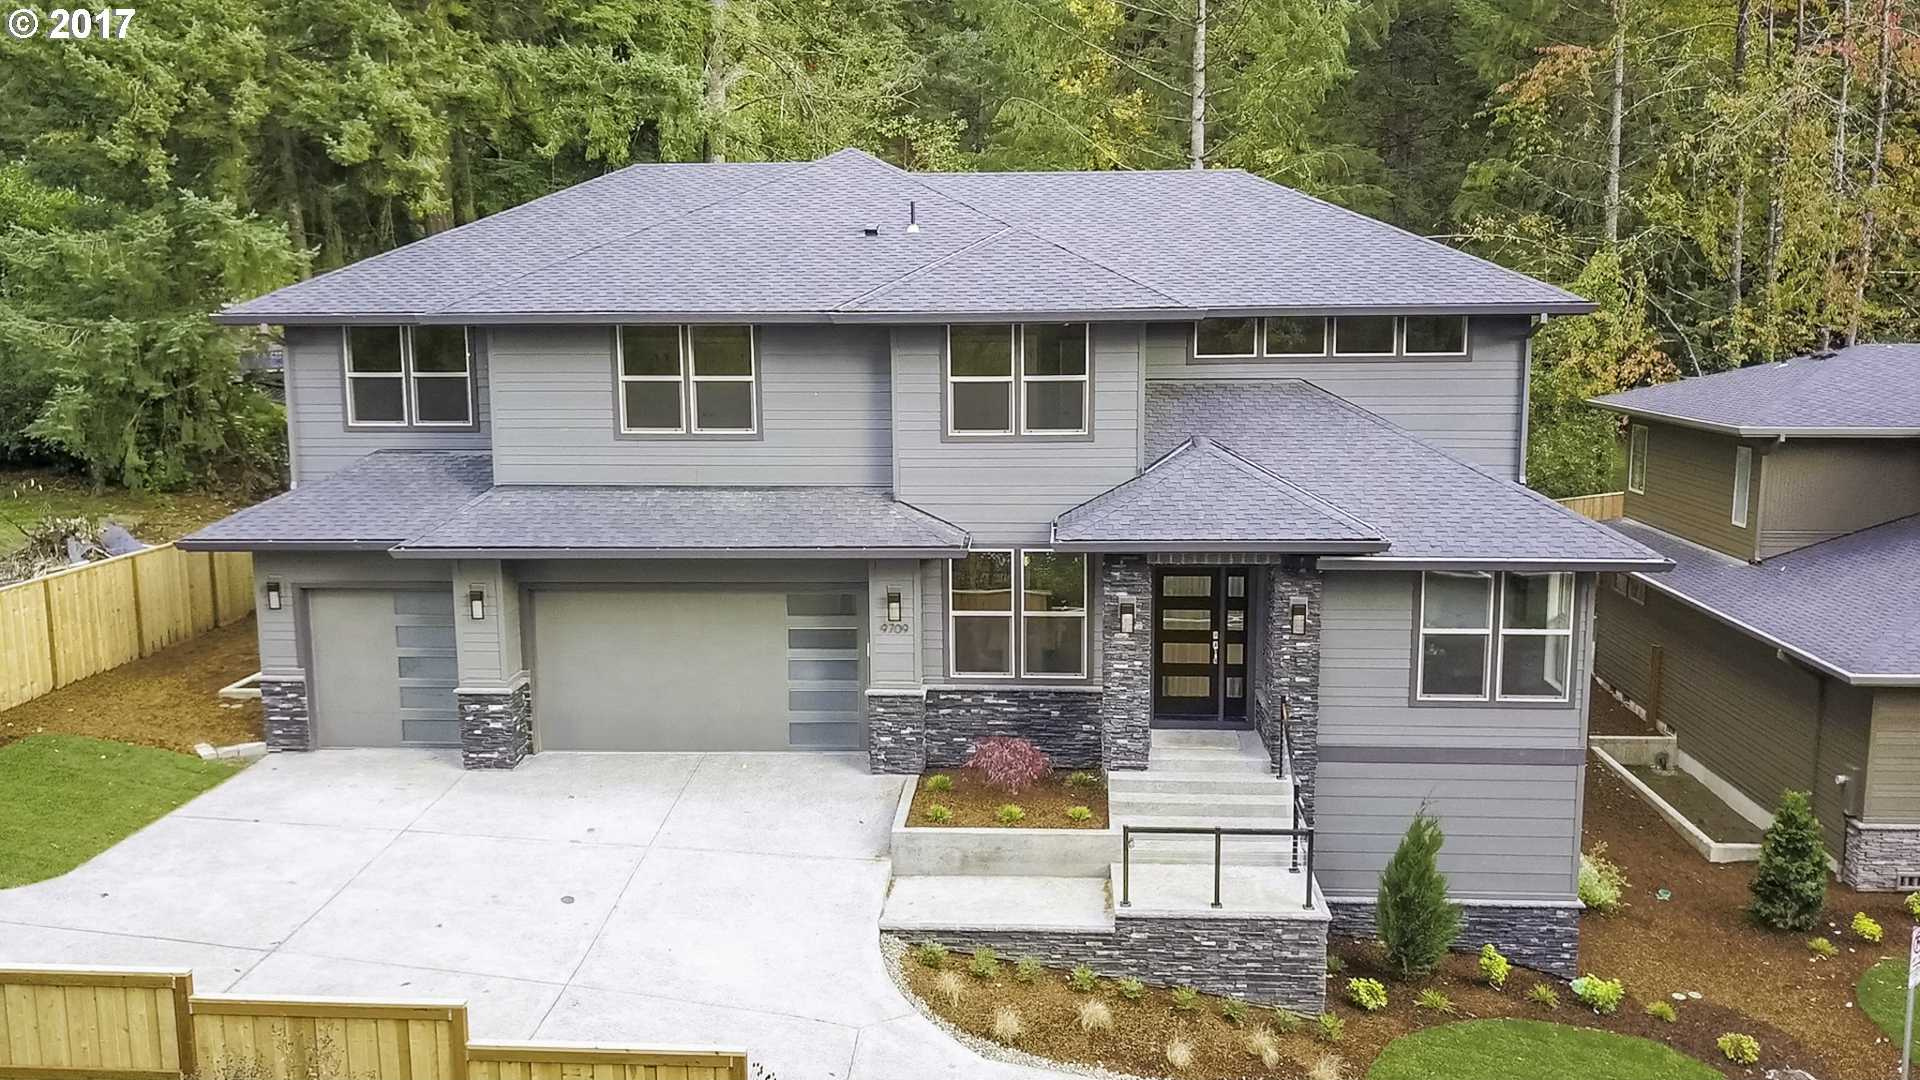 $1,089,900 - 6Br/4Ba -  for Sale in West Haven, Portland